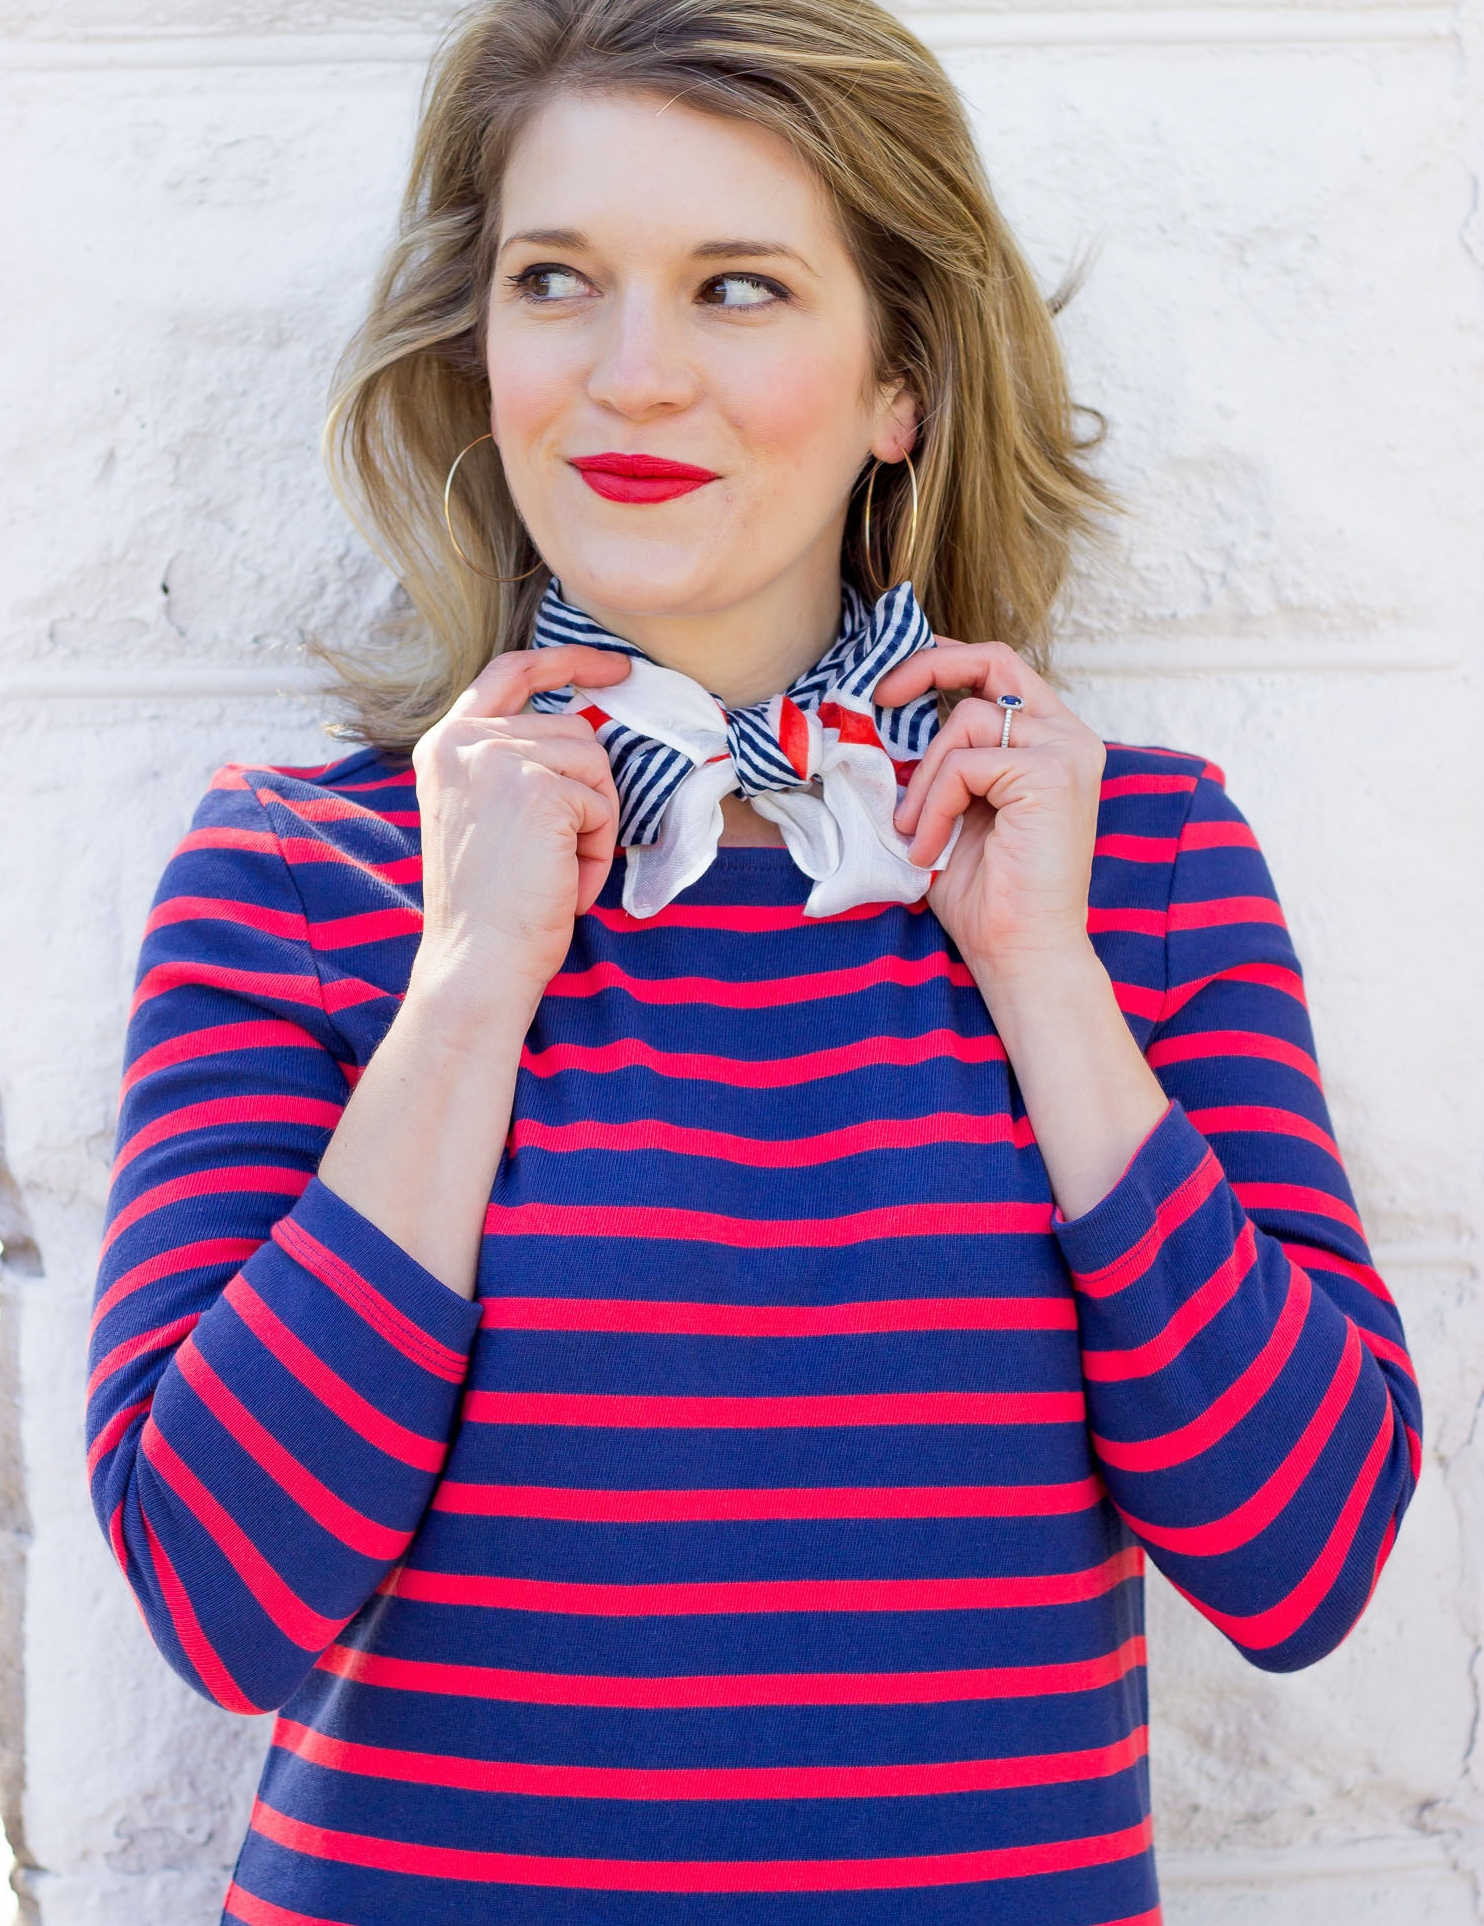 Old Navy striped dress worn by Elise Giannasi of Belle Meets World blog